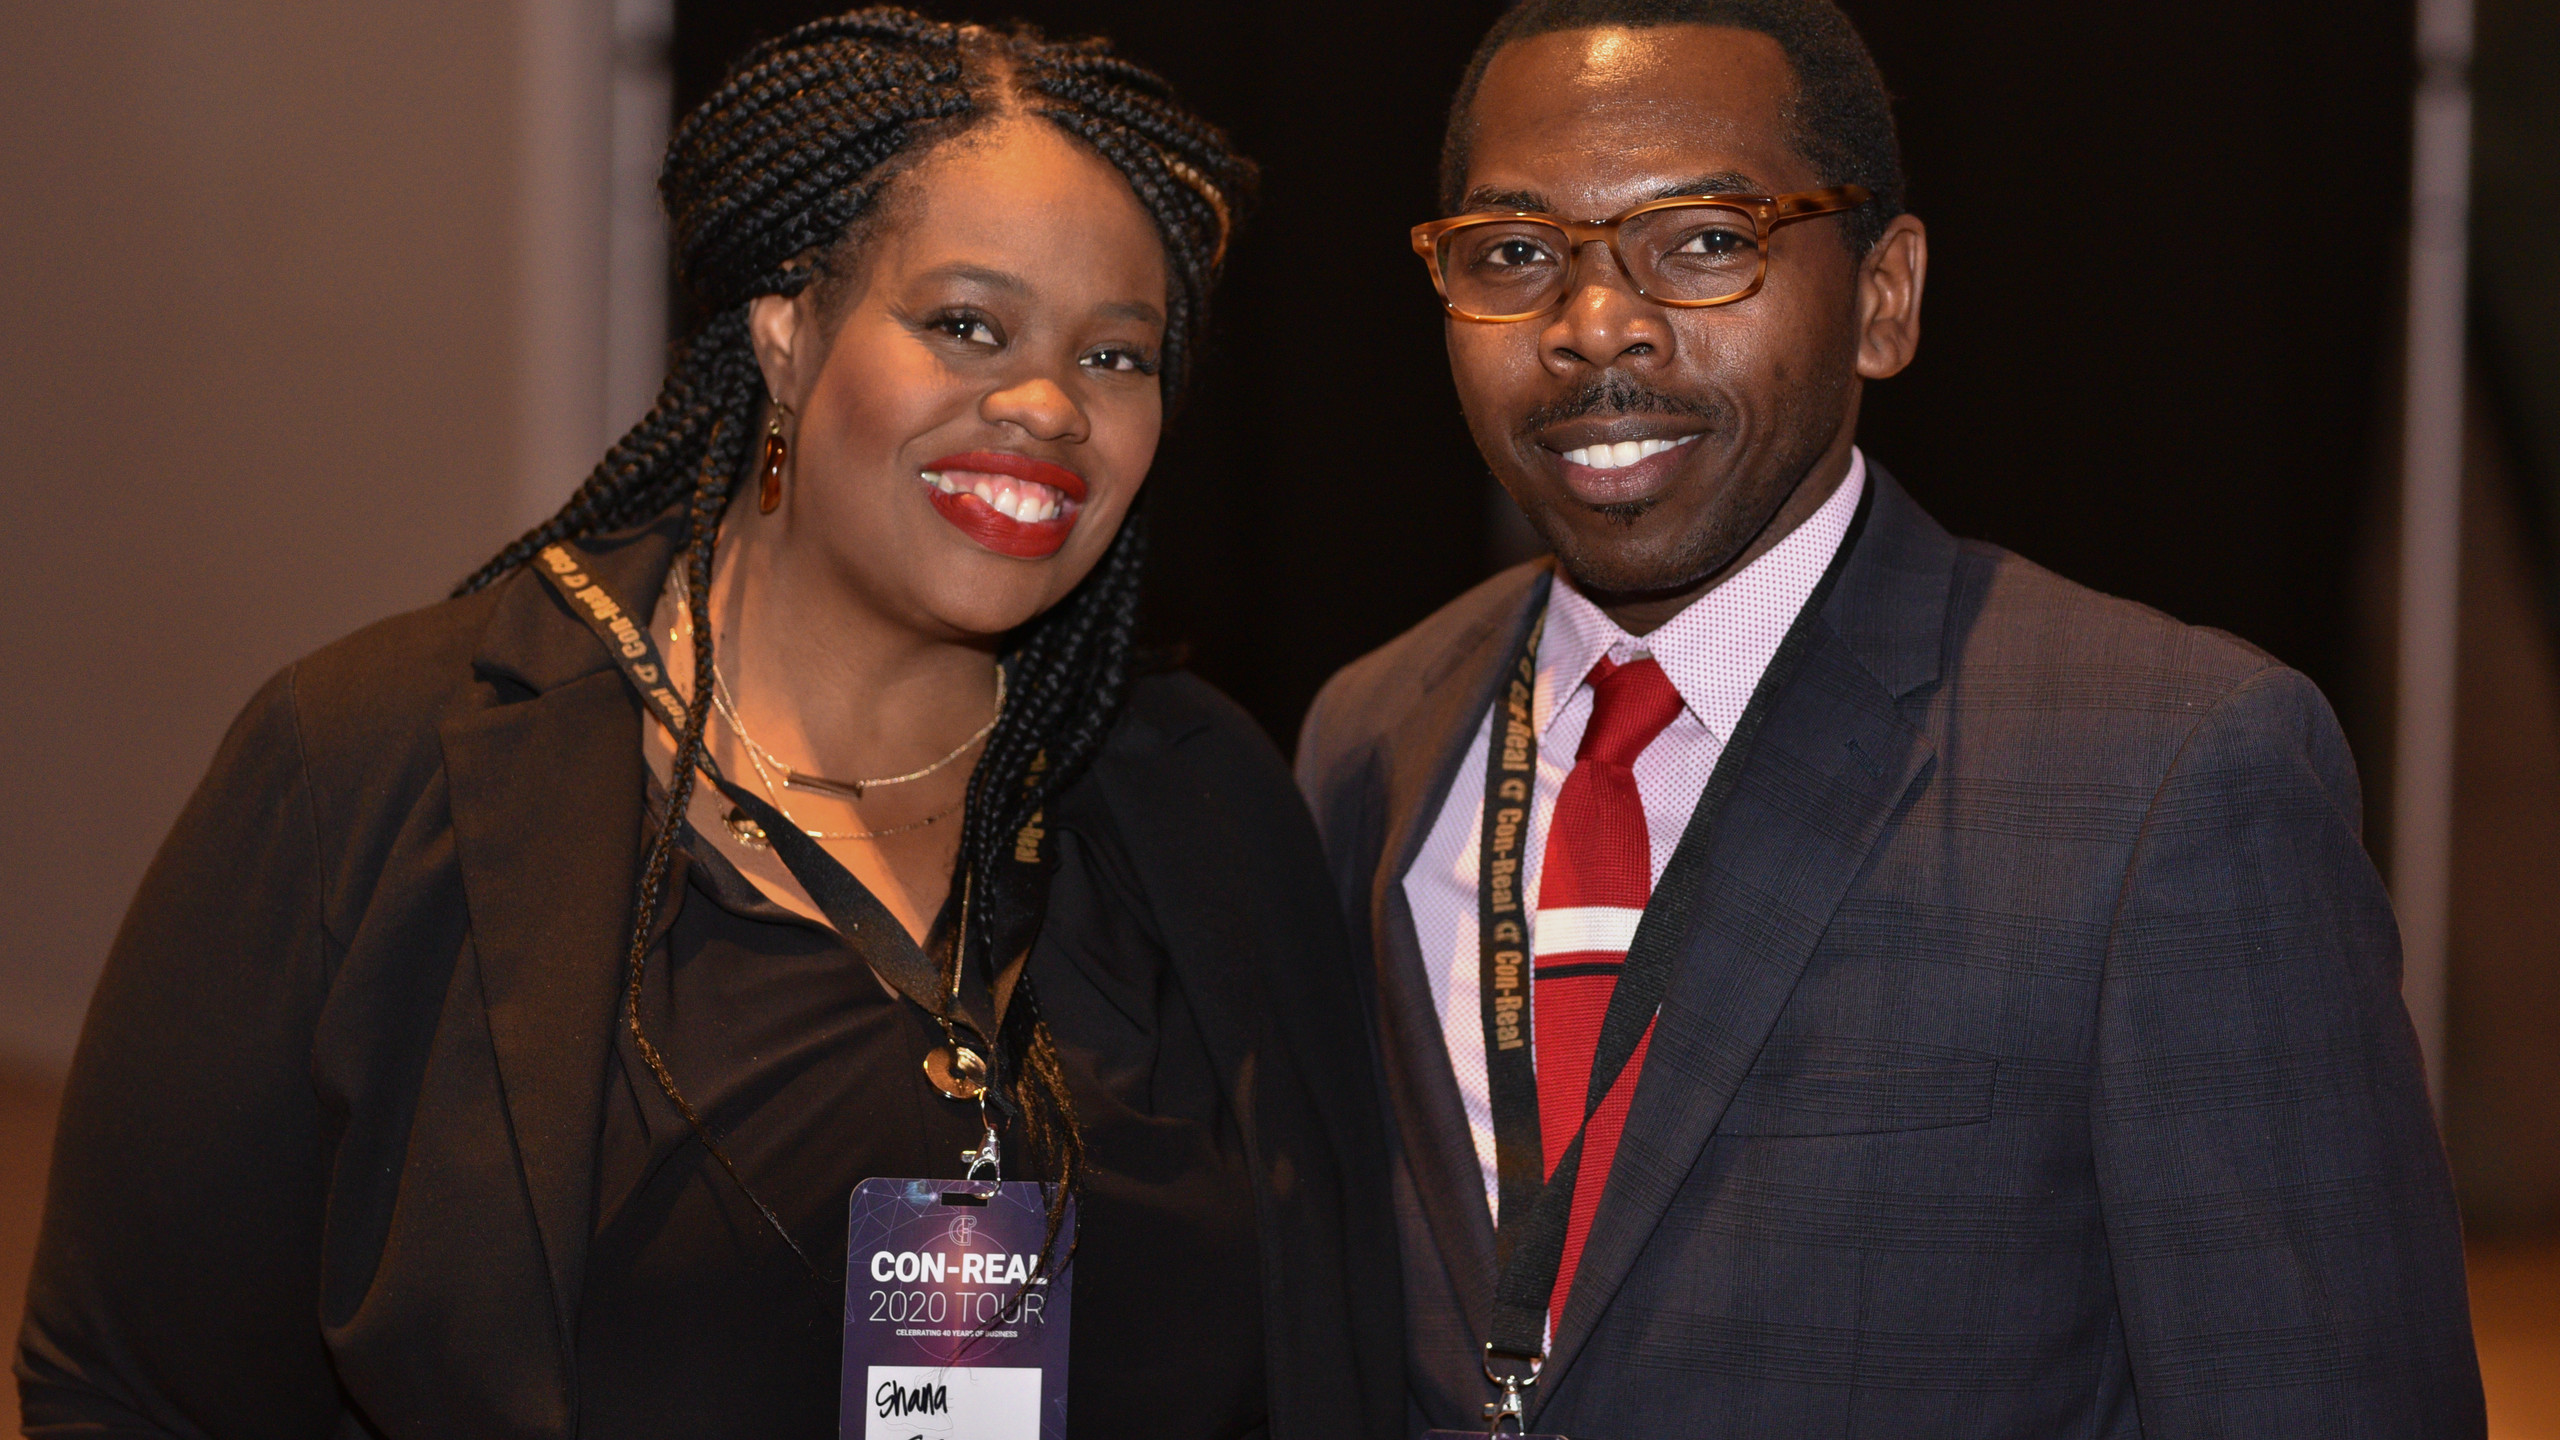 A black woman and black man in professional attire, smiling